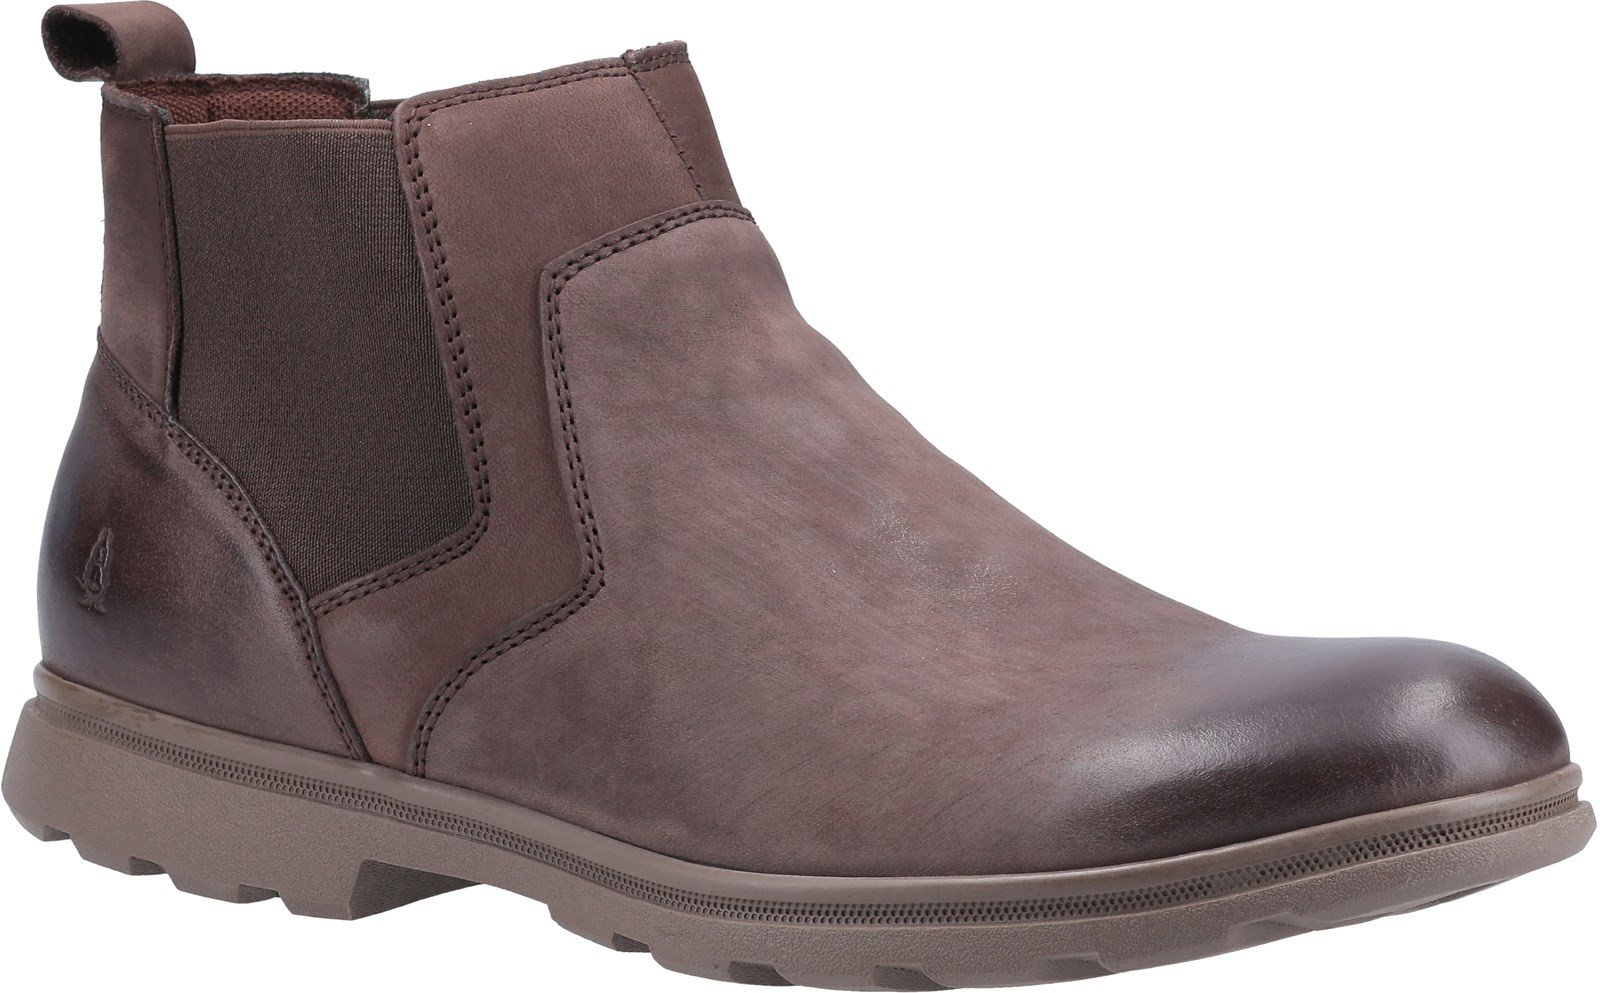 Hush Puppies Men's Tyrone Boots Various Colours 31245 - Brown 7